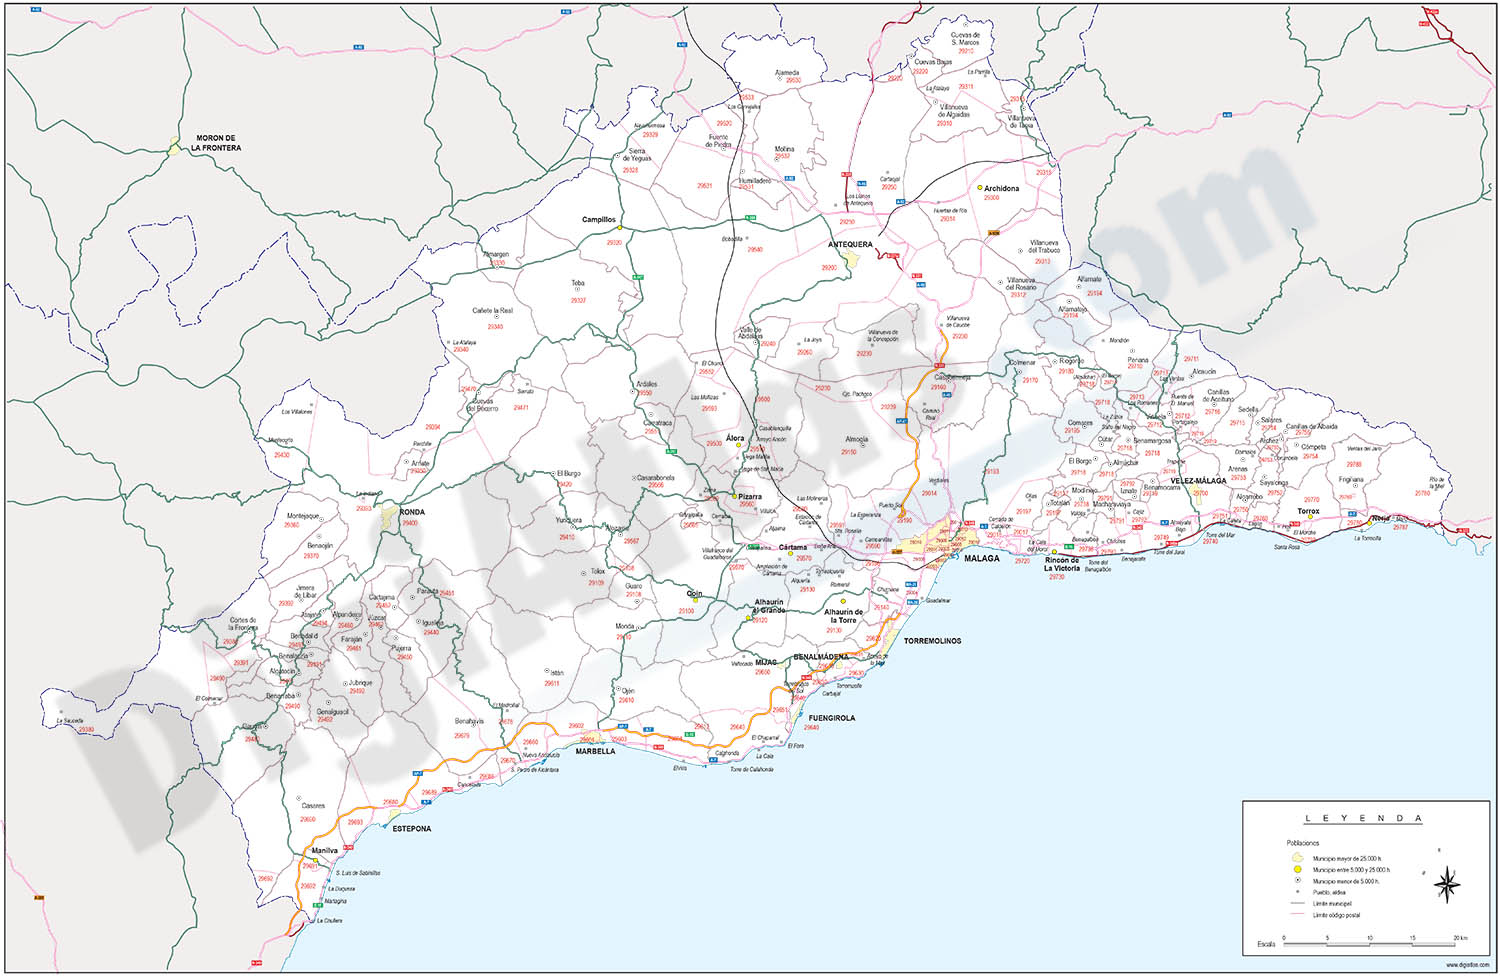 Map of Malaga province with municipalities, postal codes and roads